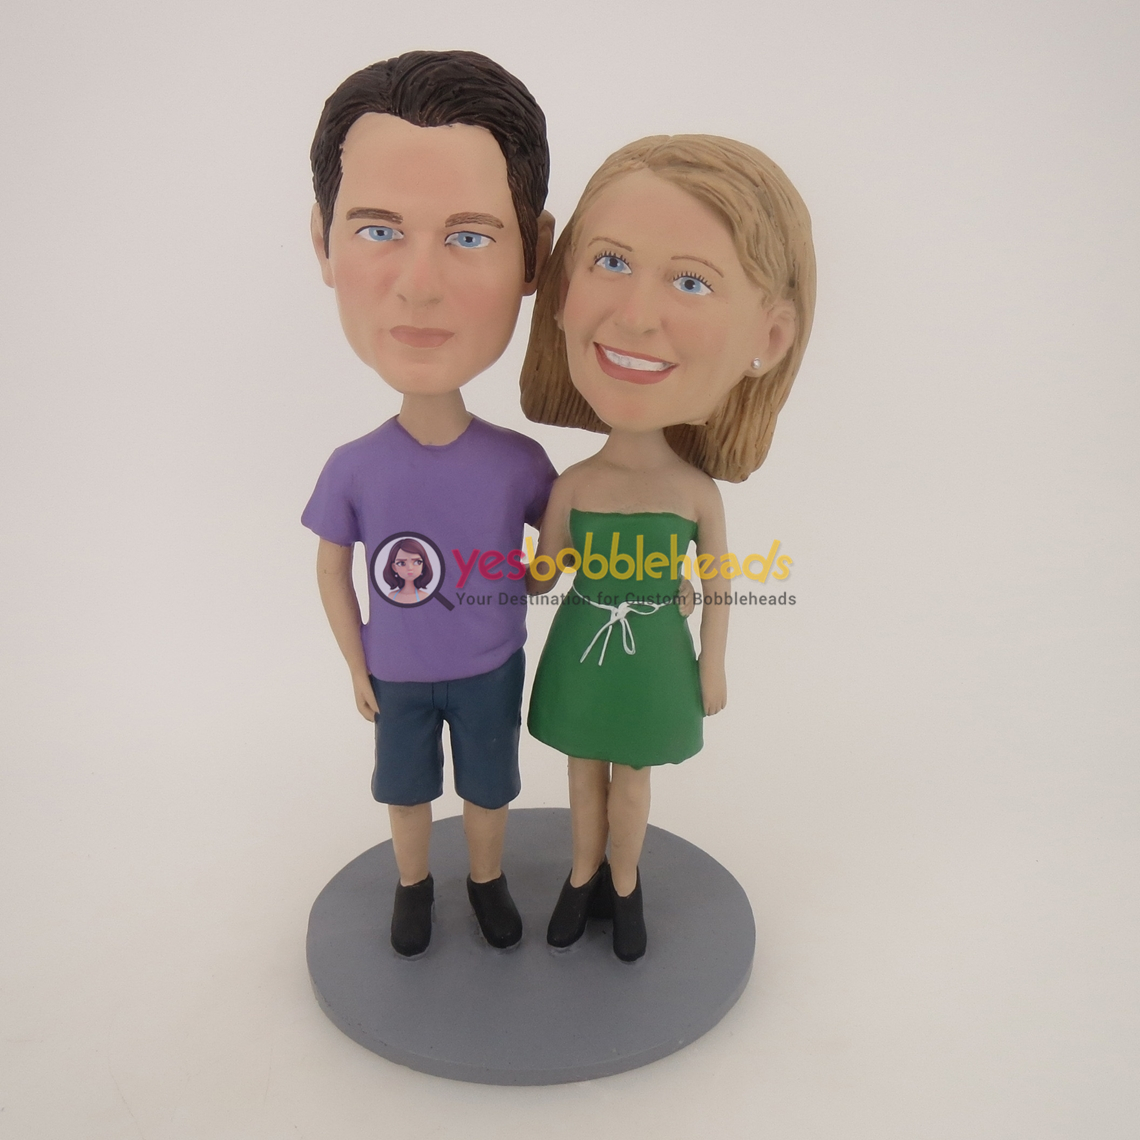 Picture of Custom Bobblehead Doll: Arm Behind Each Other Couple